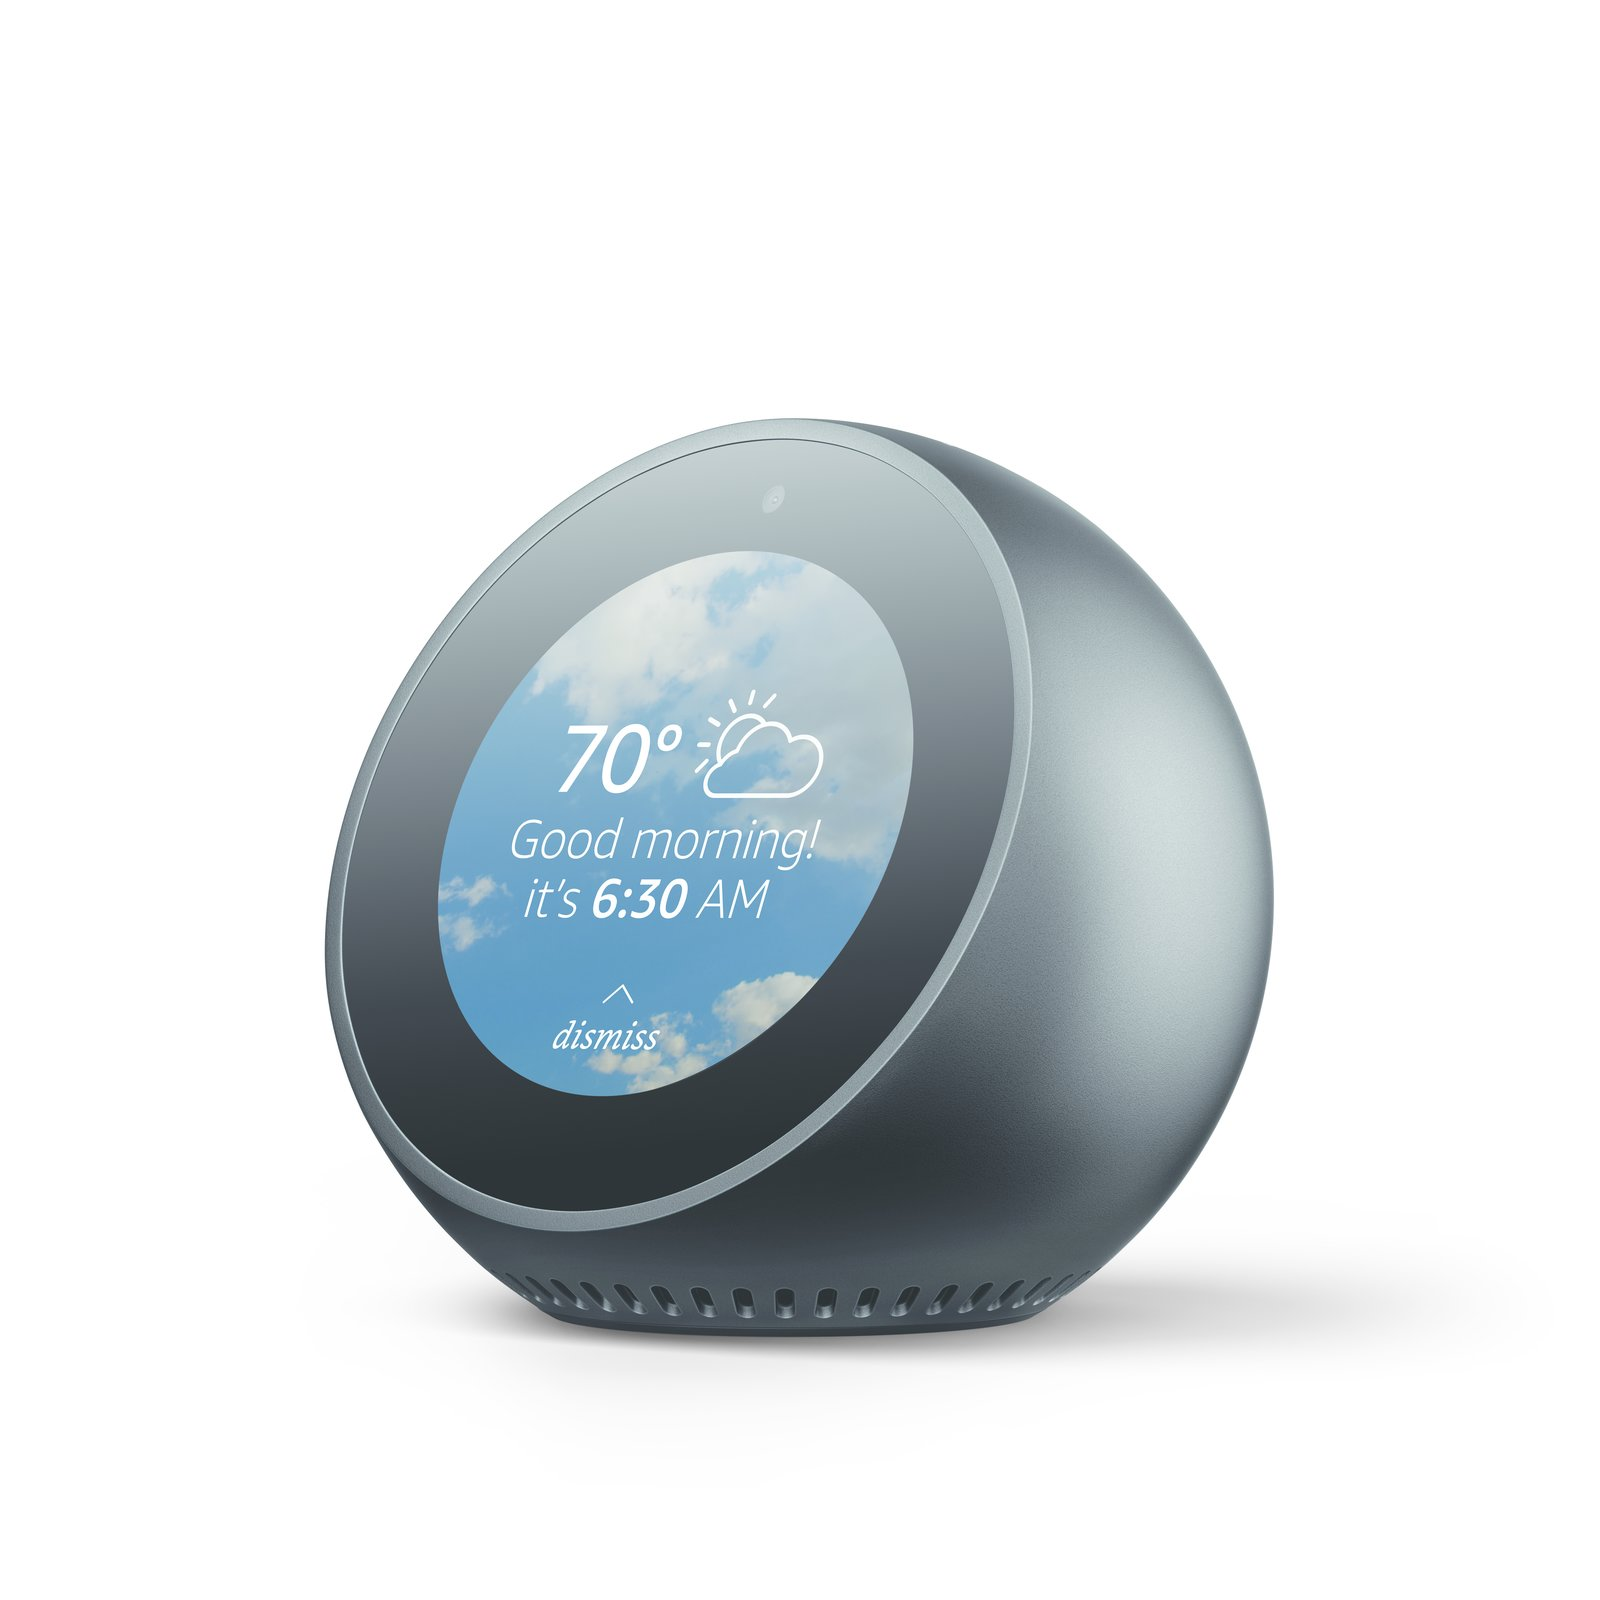 Photo 23 of 51 in 50 New Smart Home Products That Caught Our Eye